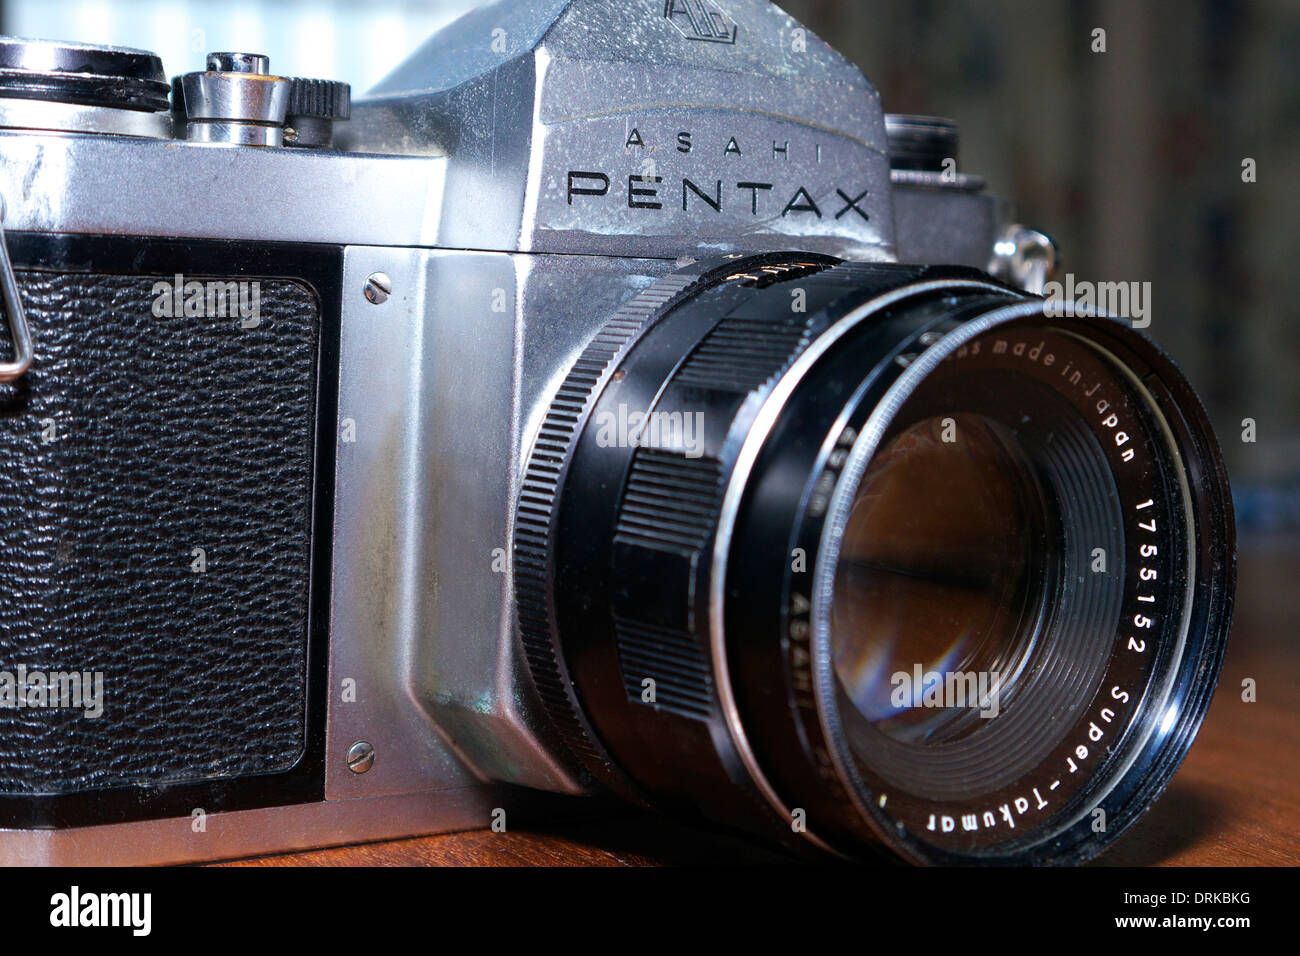 A Pentax S1a single lens reflex camera with f2, 55mm Super Takumar lens fitted. Stock Photo